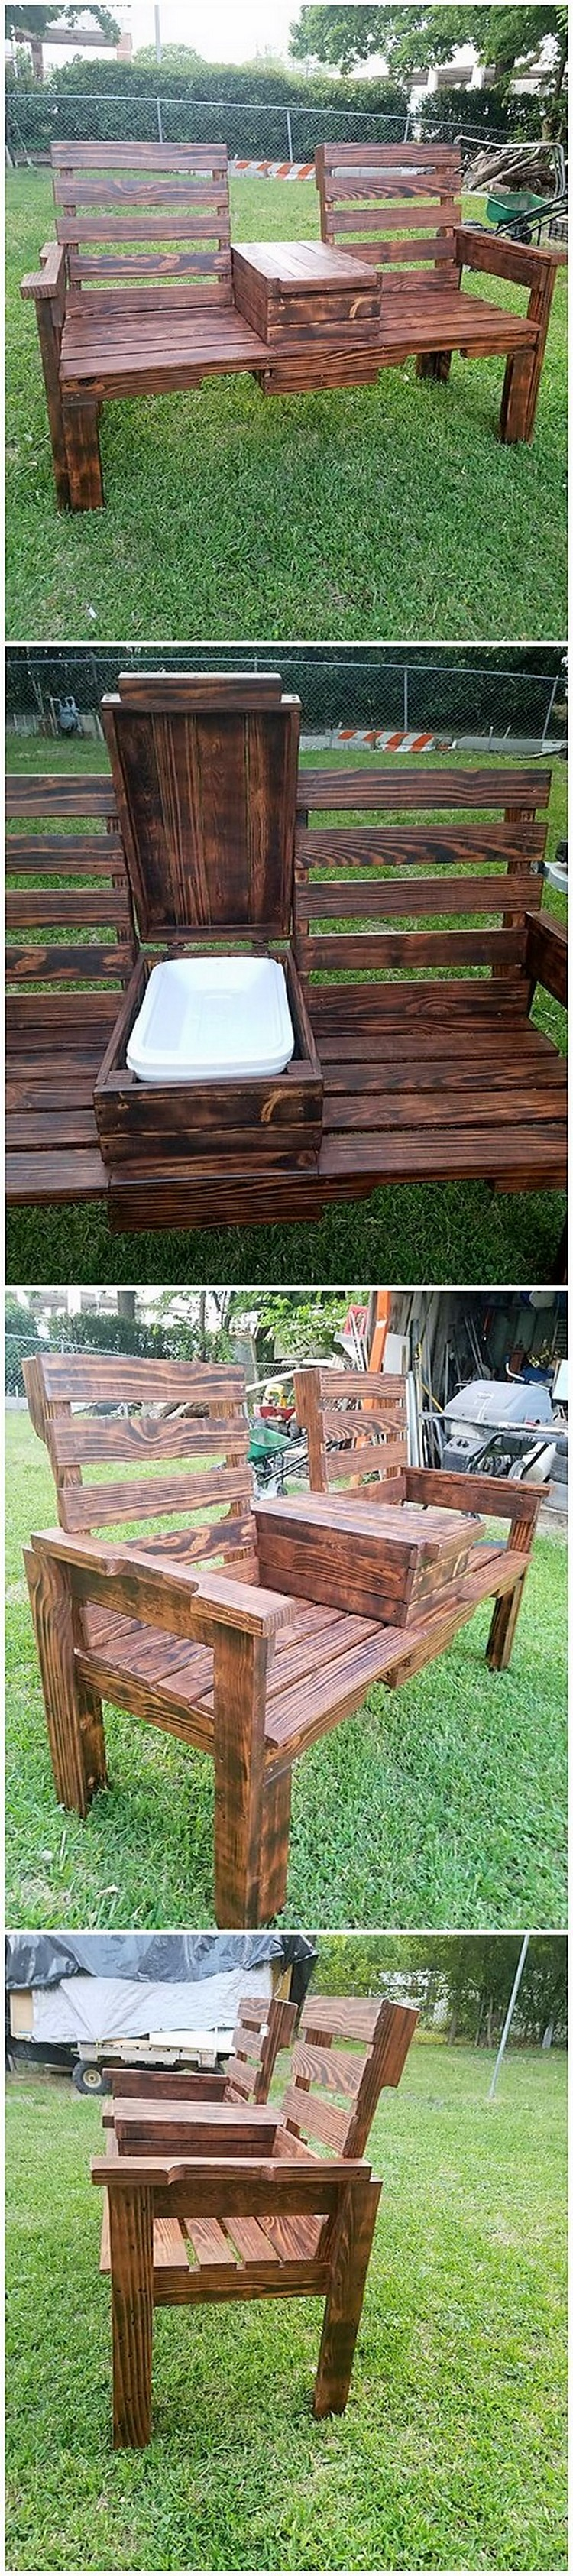 Pallet Chairs with Cooler